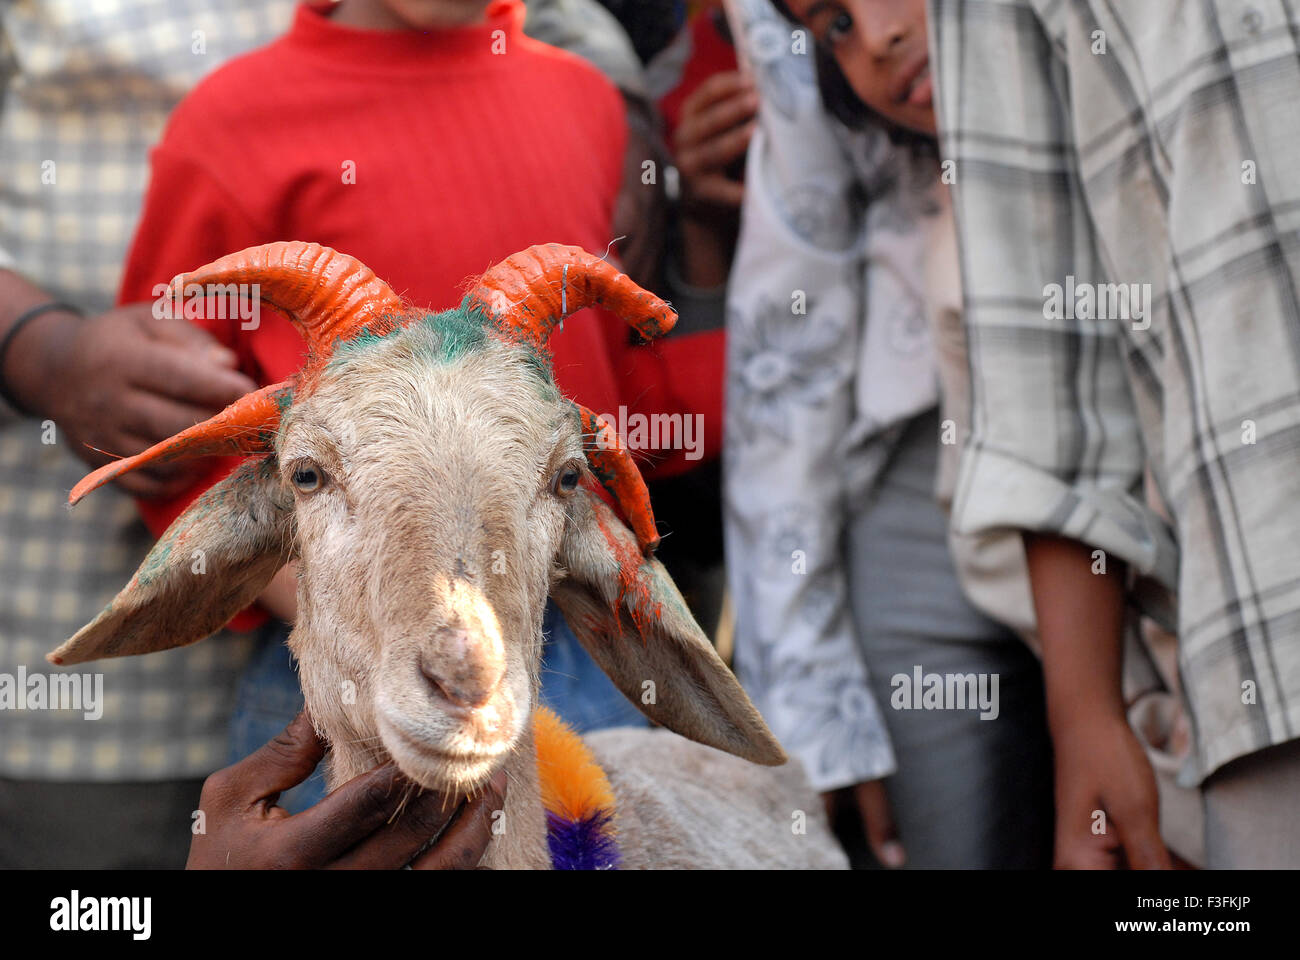 A four horned sacrificial goat put up for sale for Bakri Idd at Deonar slaughter house in Govandi Mumbai - Stock Image